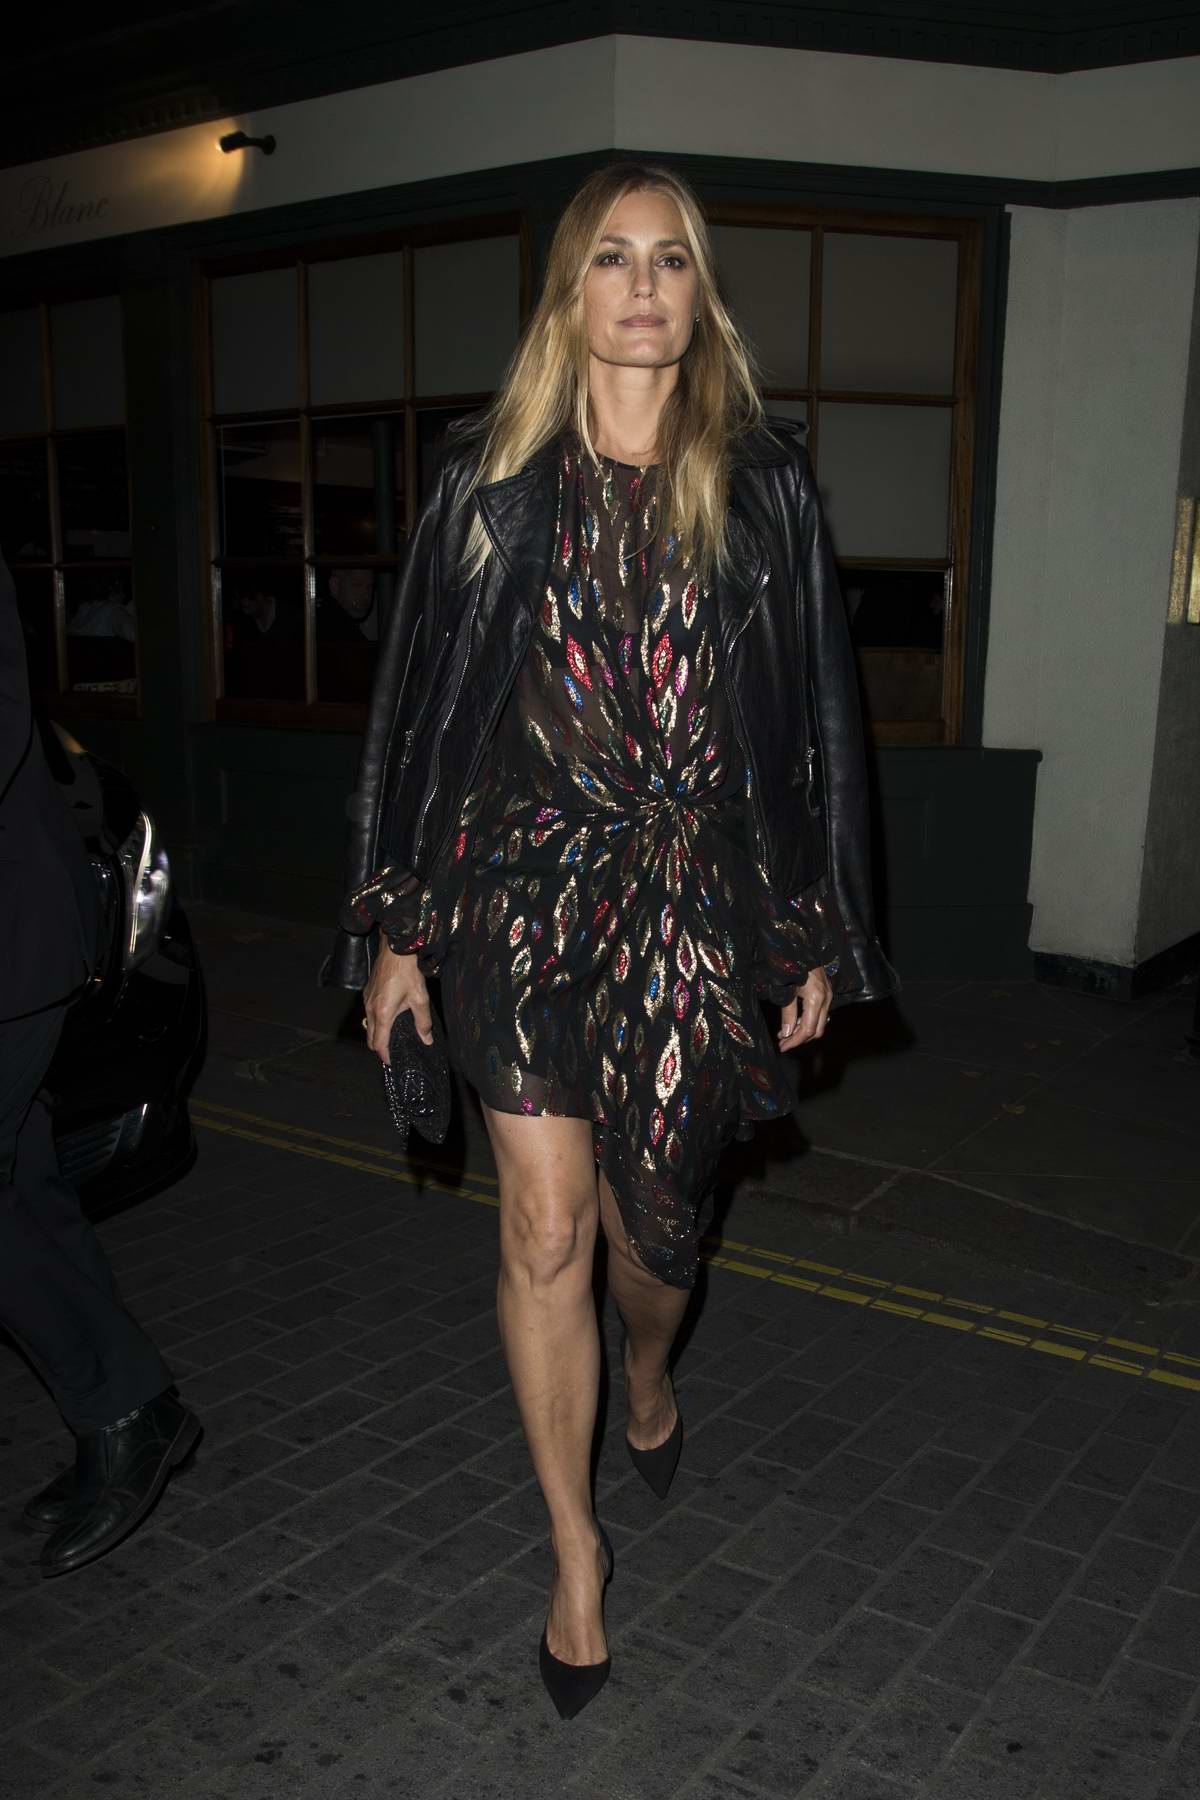 Yasmin Le Bon at Miu Miu X LOVE Magazine London Fashion Week Party in London